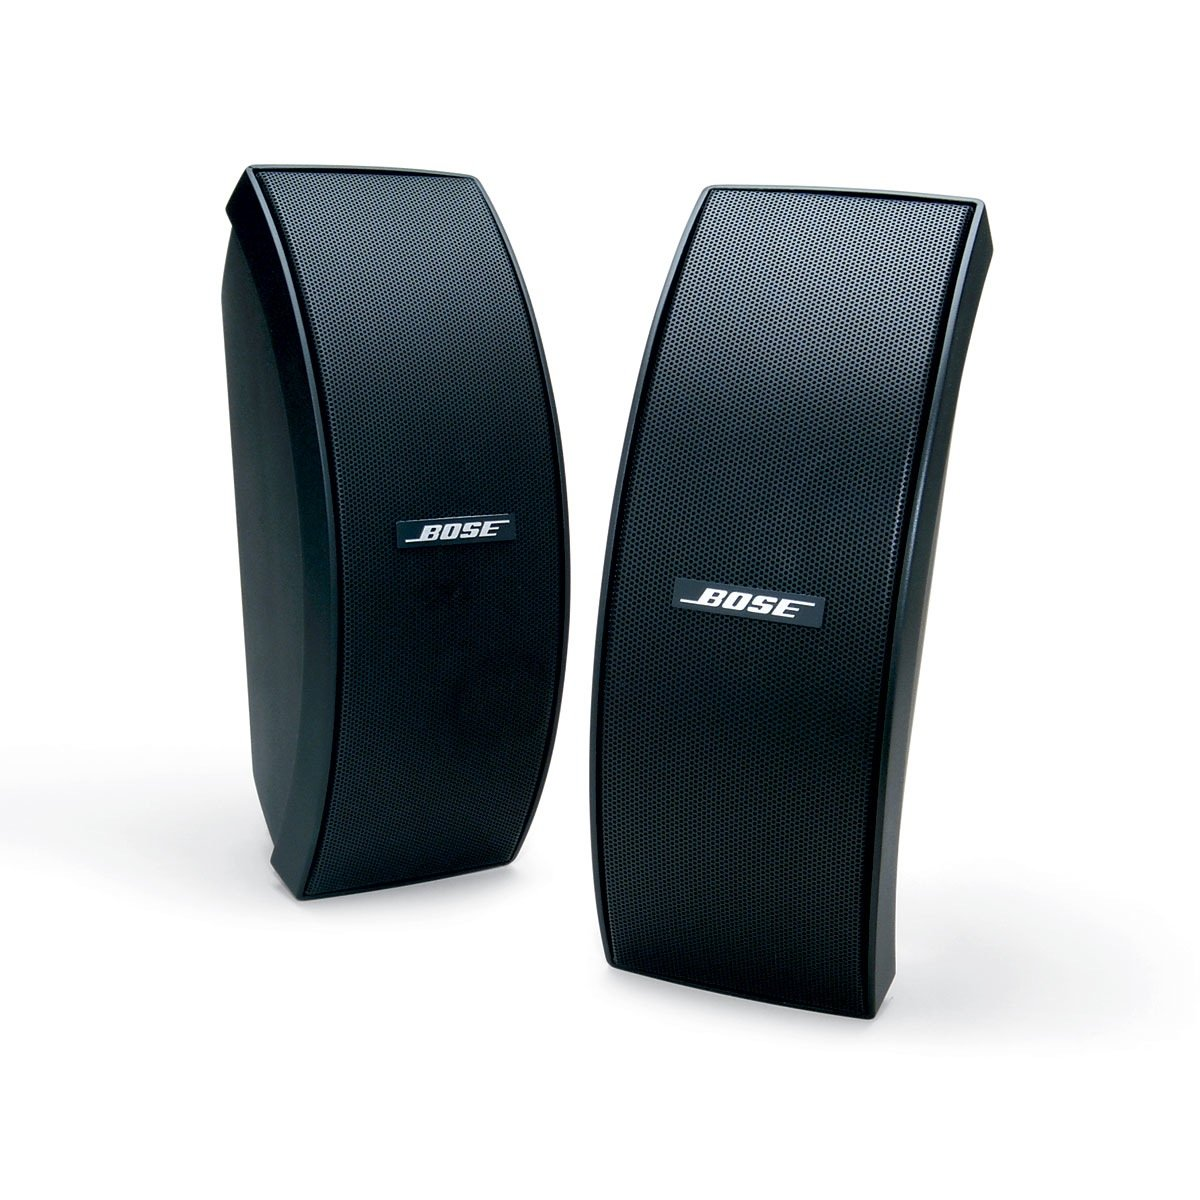 Outdoor Speakers Bose 151 Se Black 2 Patio Pool Garden